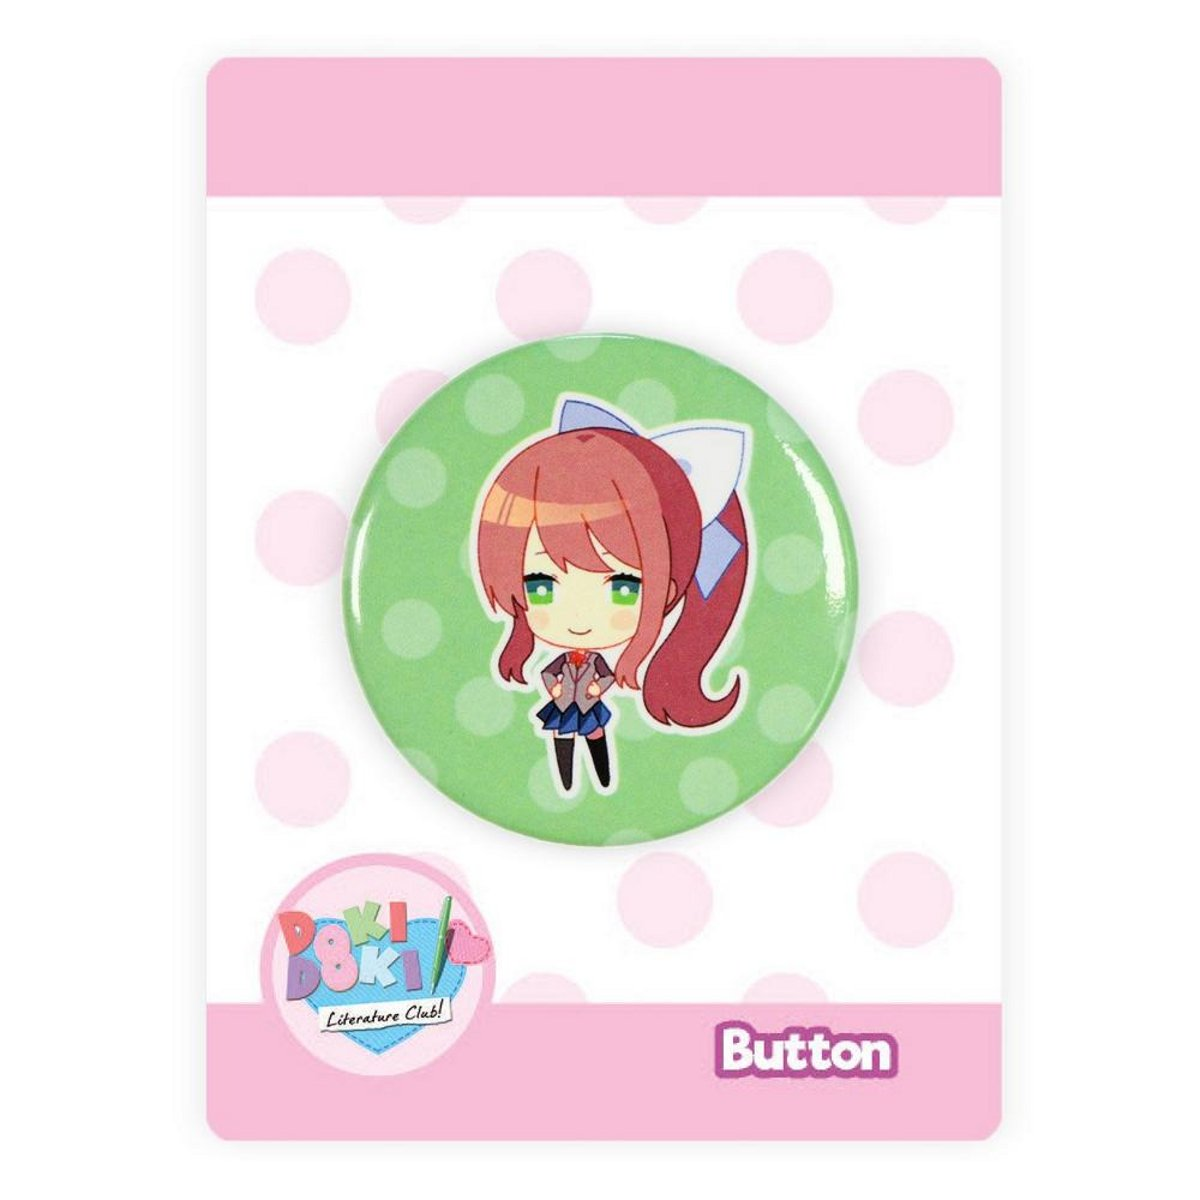 Monika Button